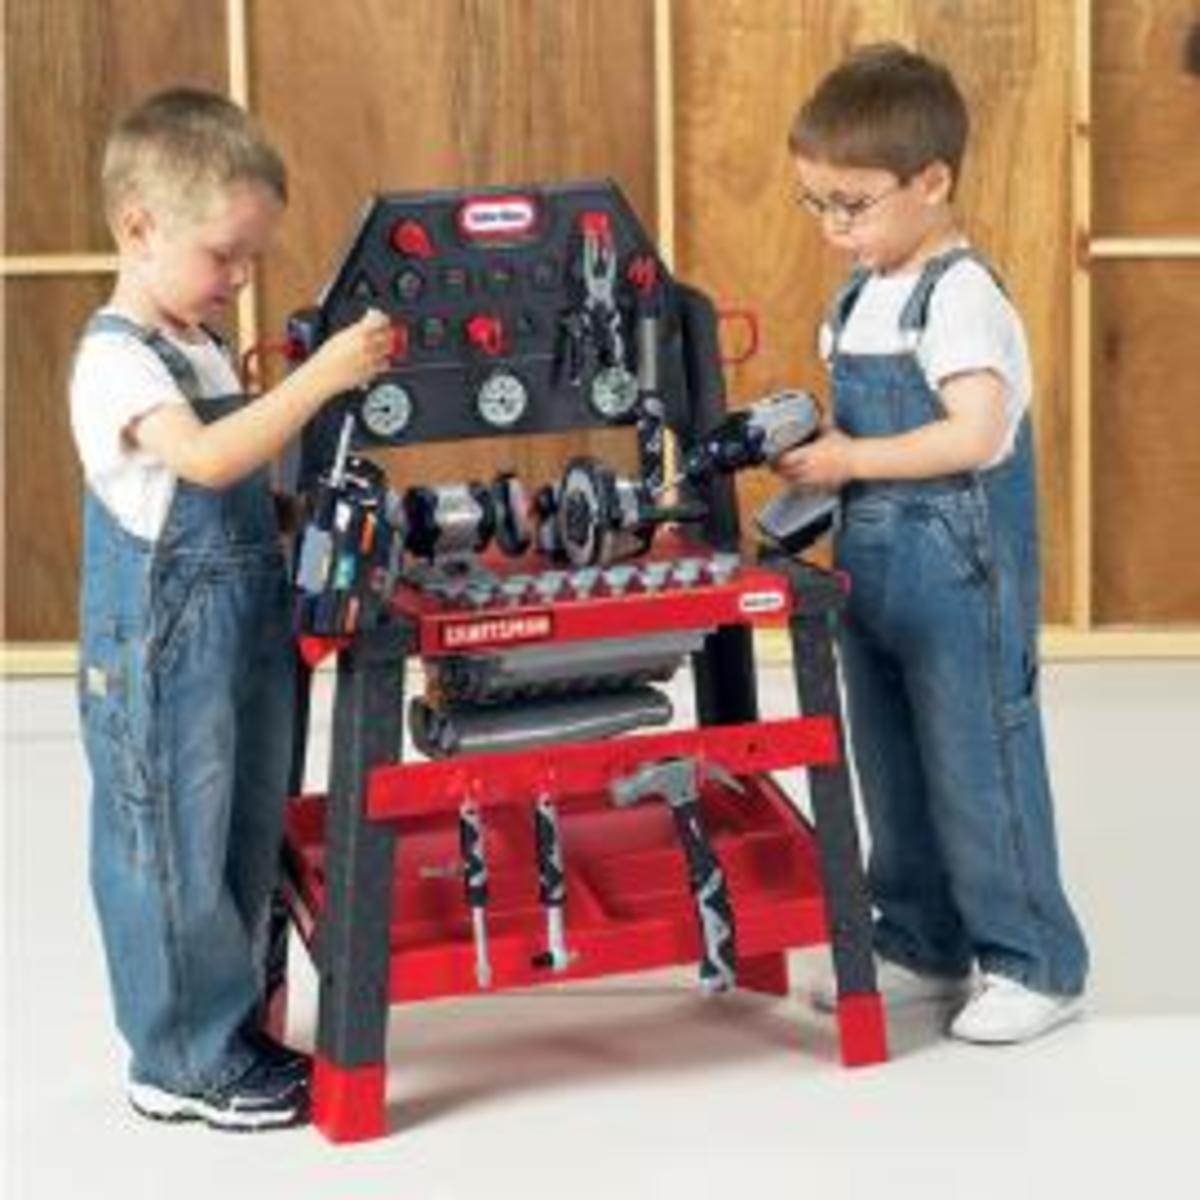 Little tikes workbench for Little tikes 2 in 1 buildin to learn motor workshop